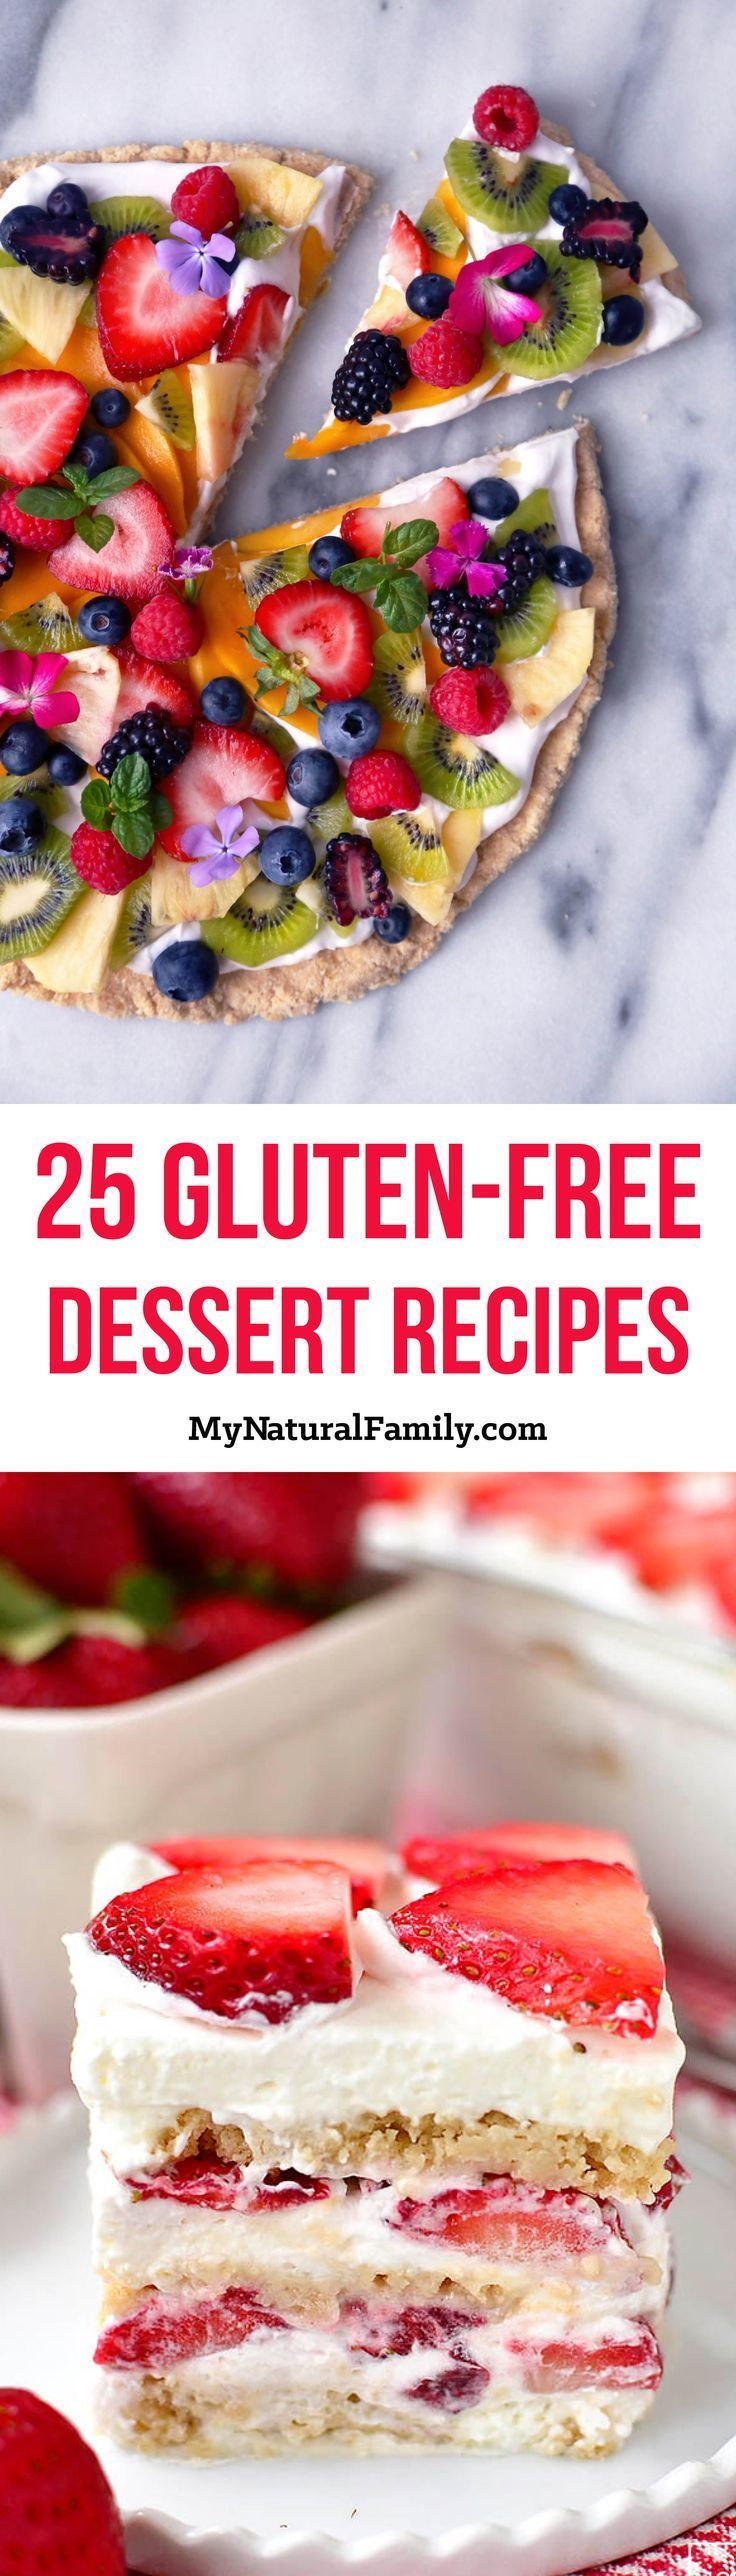 I can't believe all these desserts are gluten-free. They all look so good!